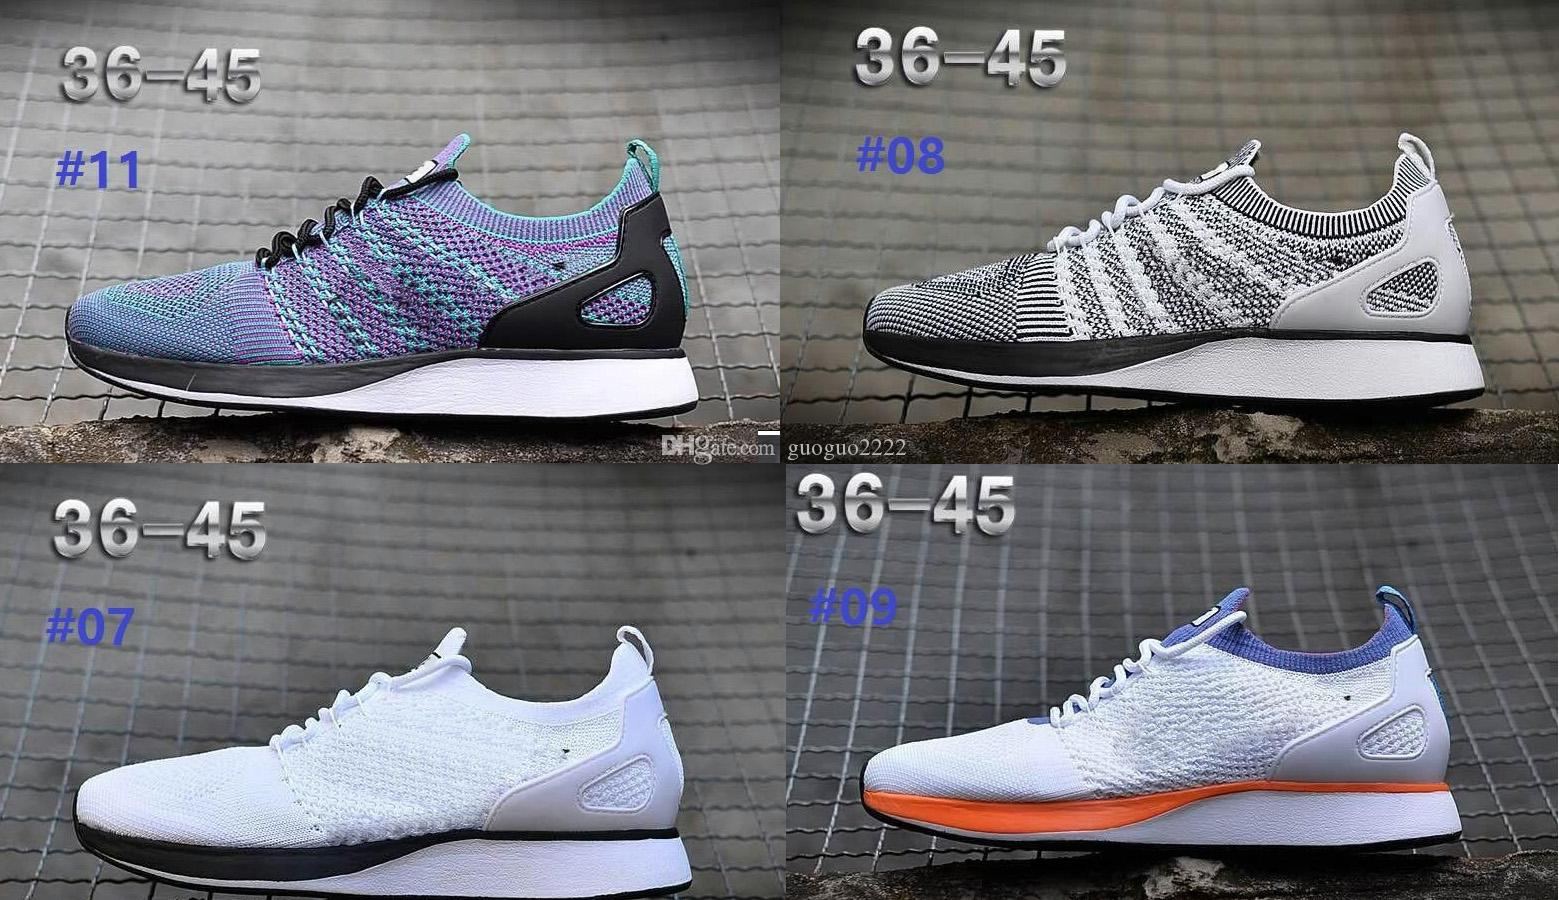 visa payment cheap online Inexpensive for sale 2018 VaporMax 2.0 high quality Men and Women Casual Shoes Sneakers Sports Shoes Black White green Hiking Walking Shoes 36-45 clearance cost wholesale price sale online cheap wholesale price JiTB7tC